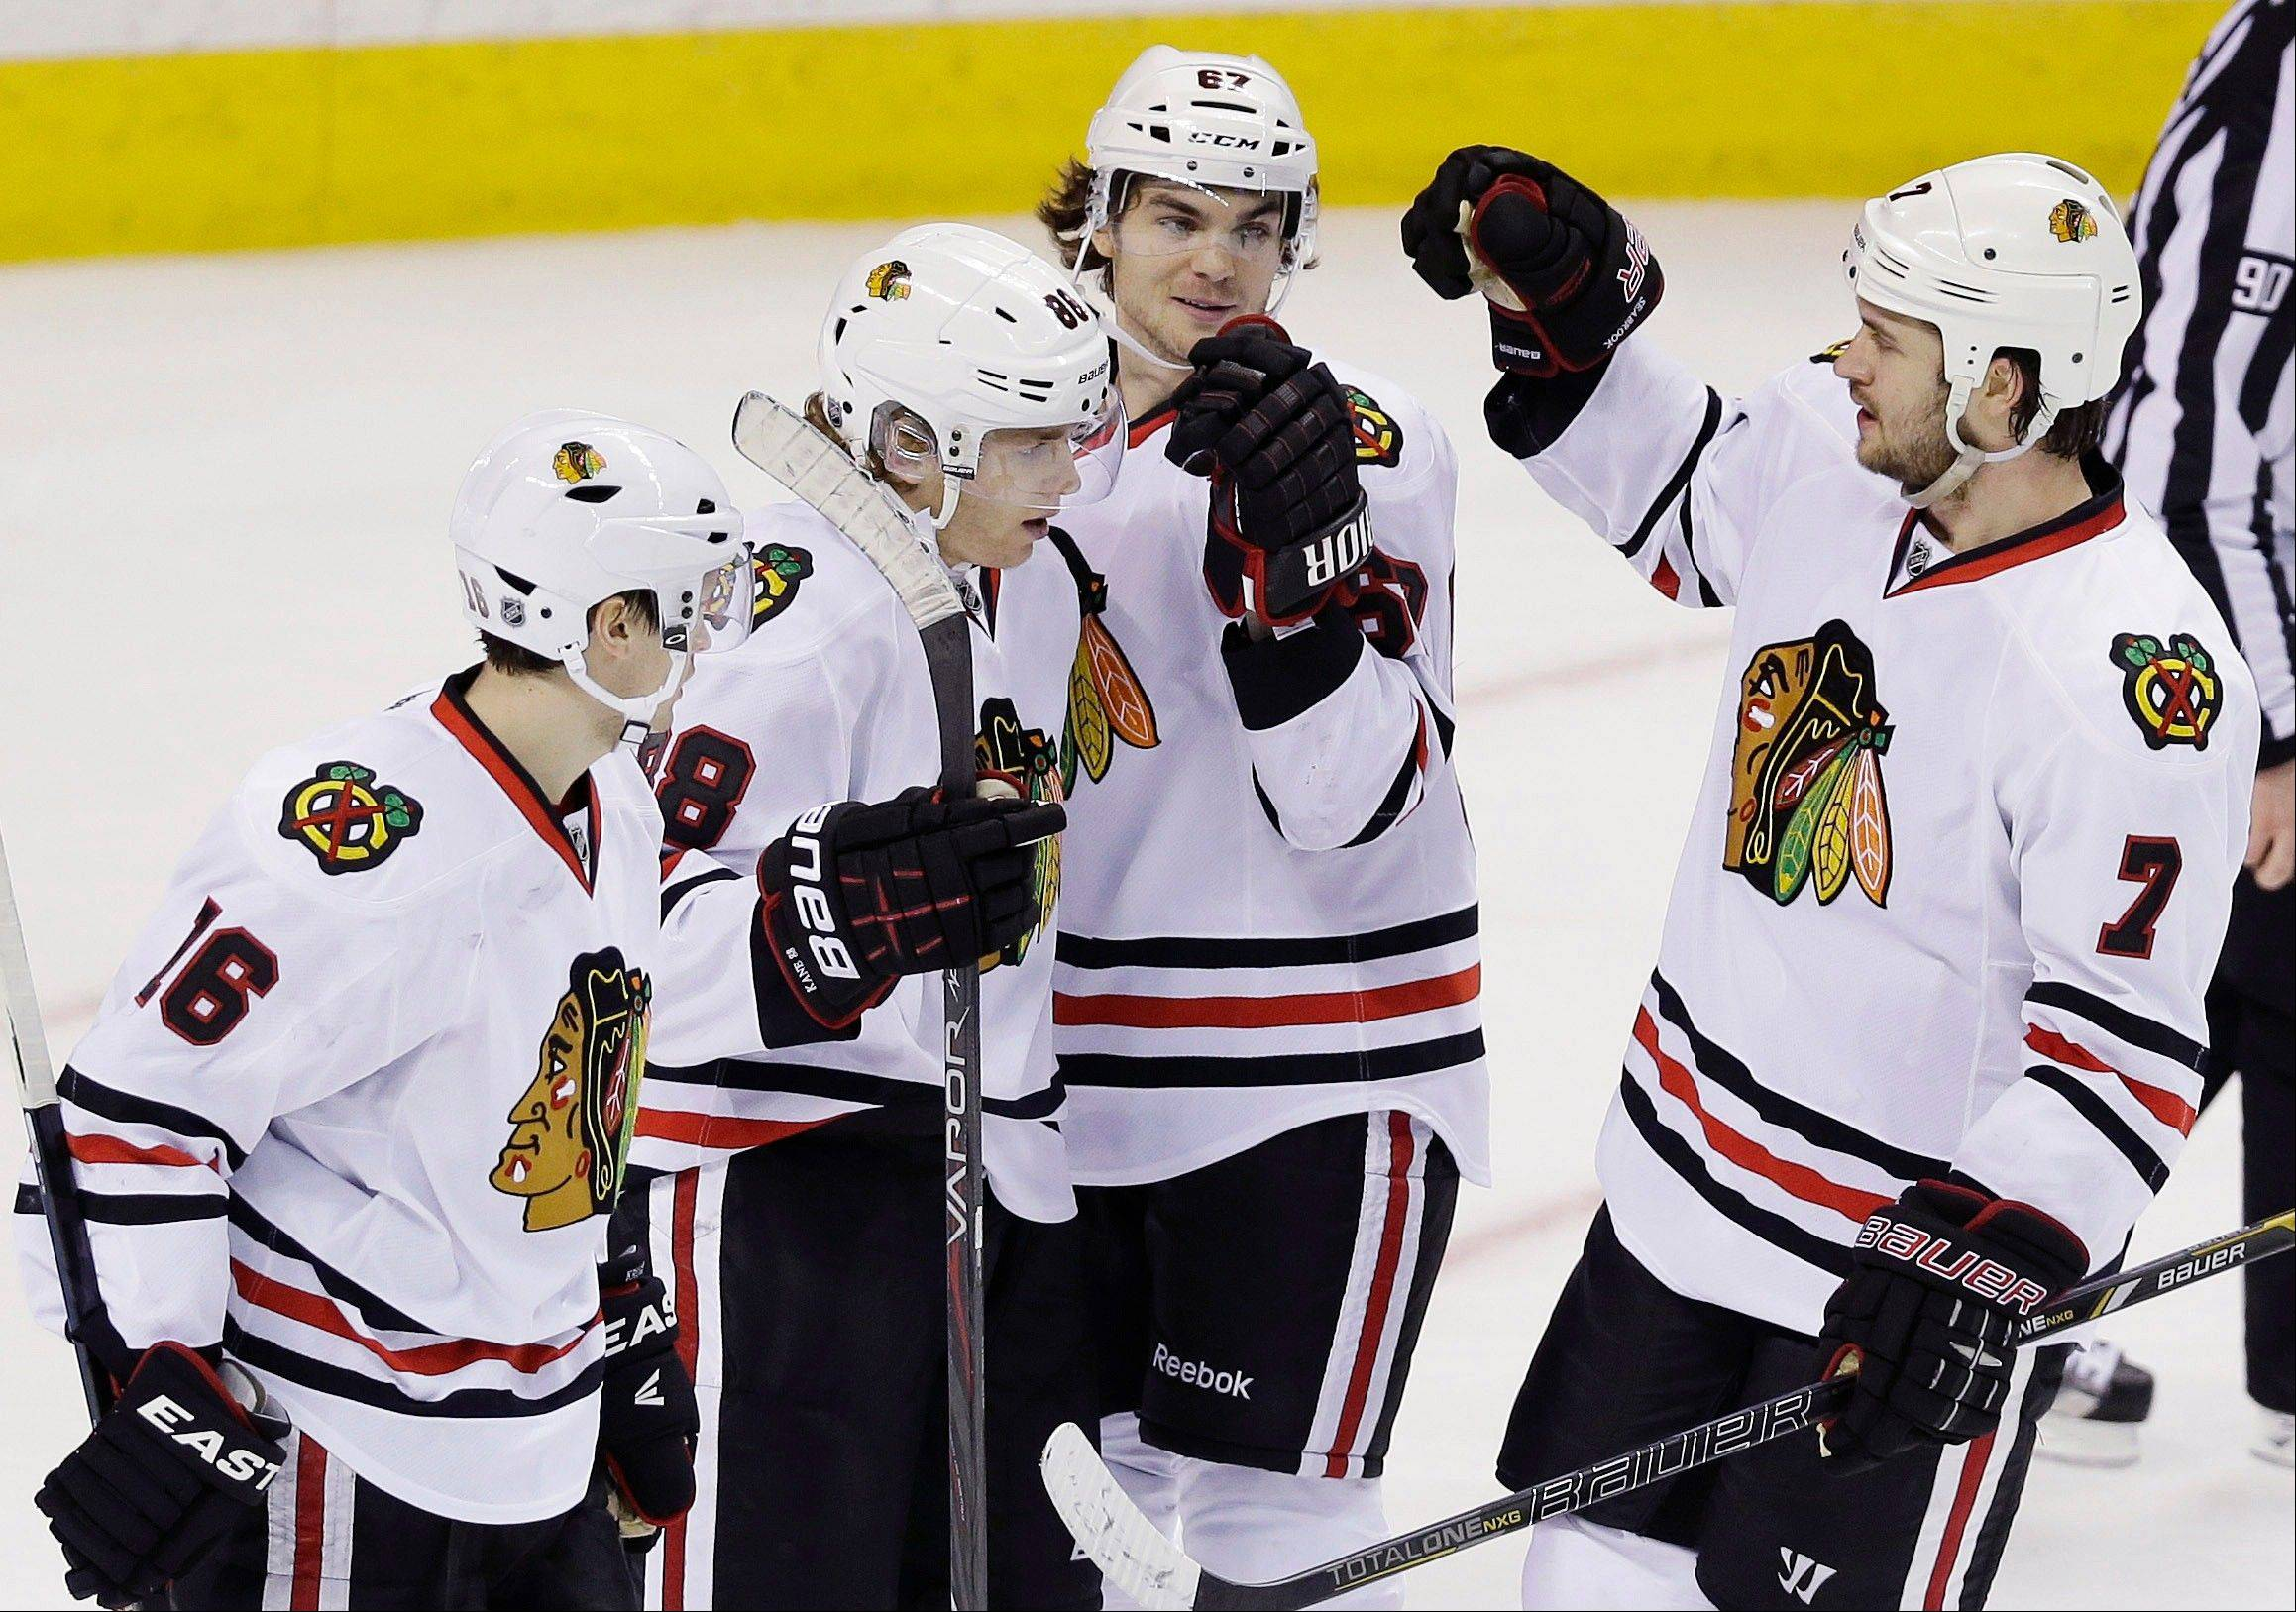 Chicago Blackhawks right wing Patrick Kane, second from left, is congratulated by teammates after scoring against the San Jose Sharks during the third period of an NHL hockey game in San Jose, Calif., Tuesday, Feb. 5, 2013. Chicago won 5-3. (AP Photo/Marcio Jose Sanchez)